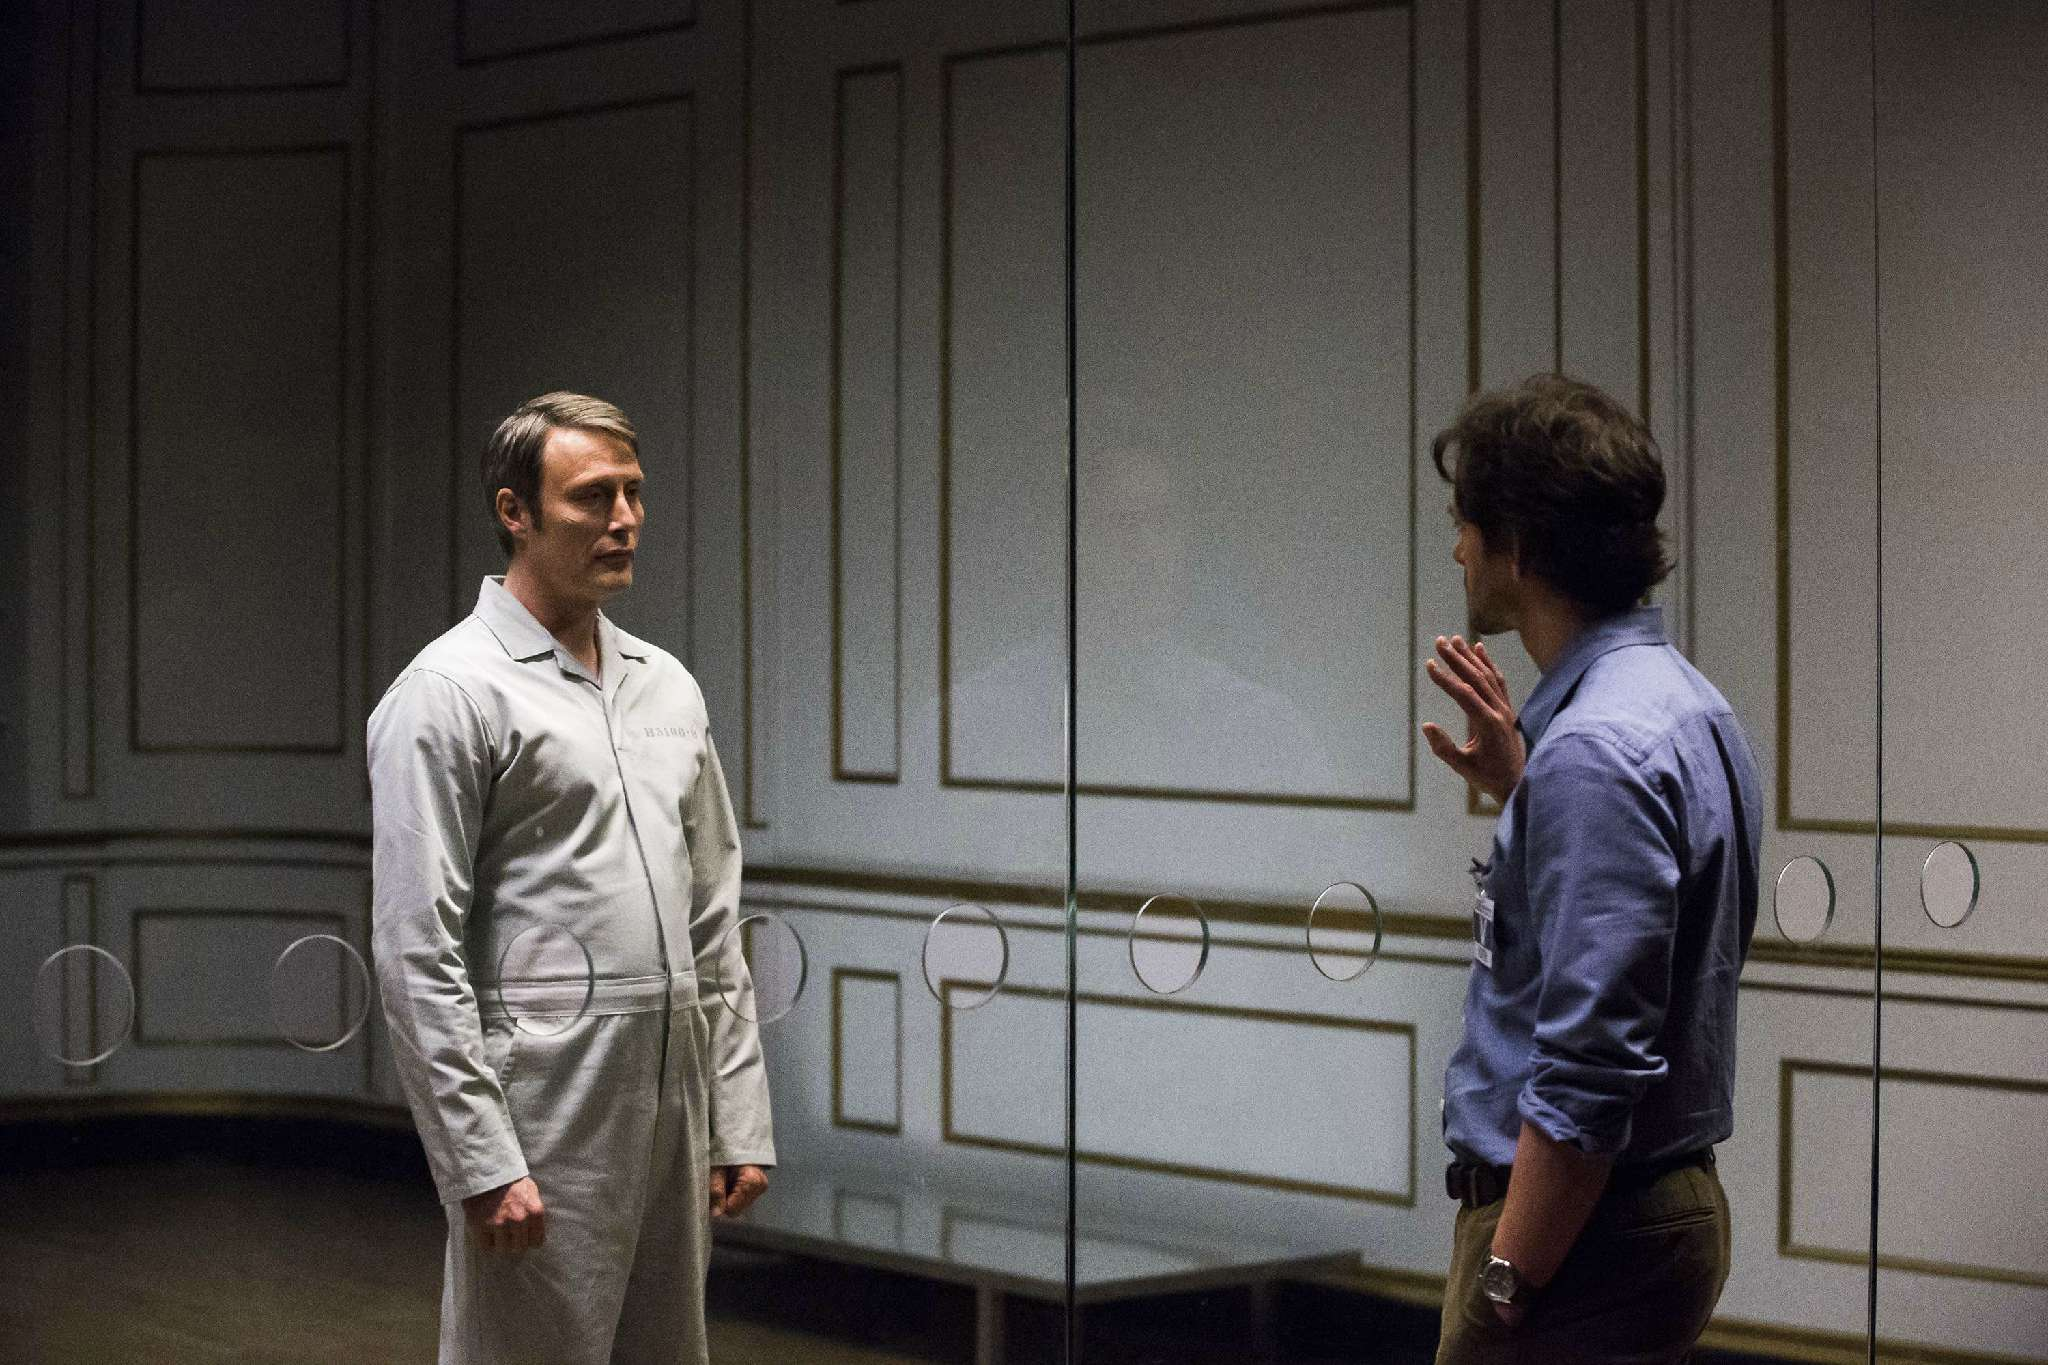 Hannibal - 03x13 - The Wrath of the Lamb